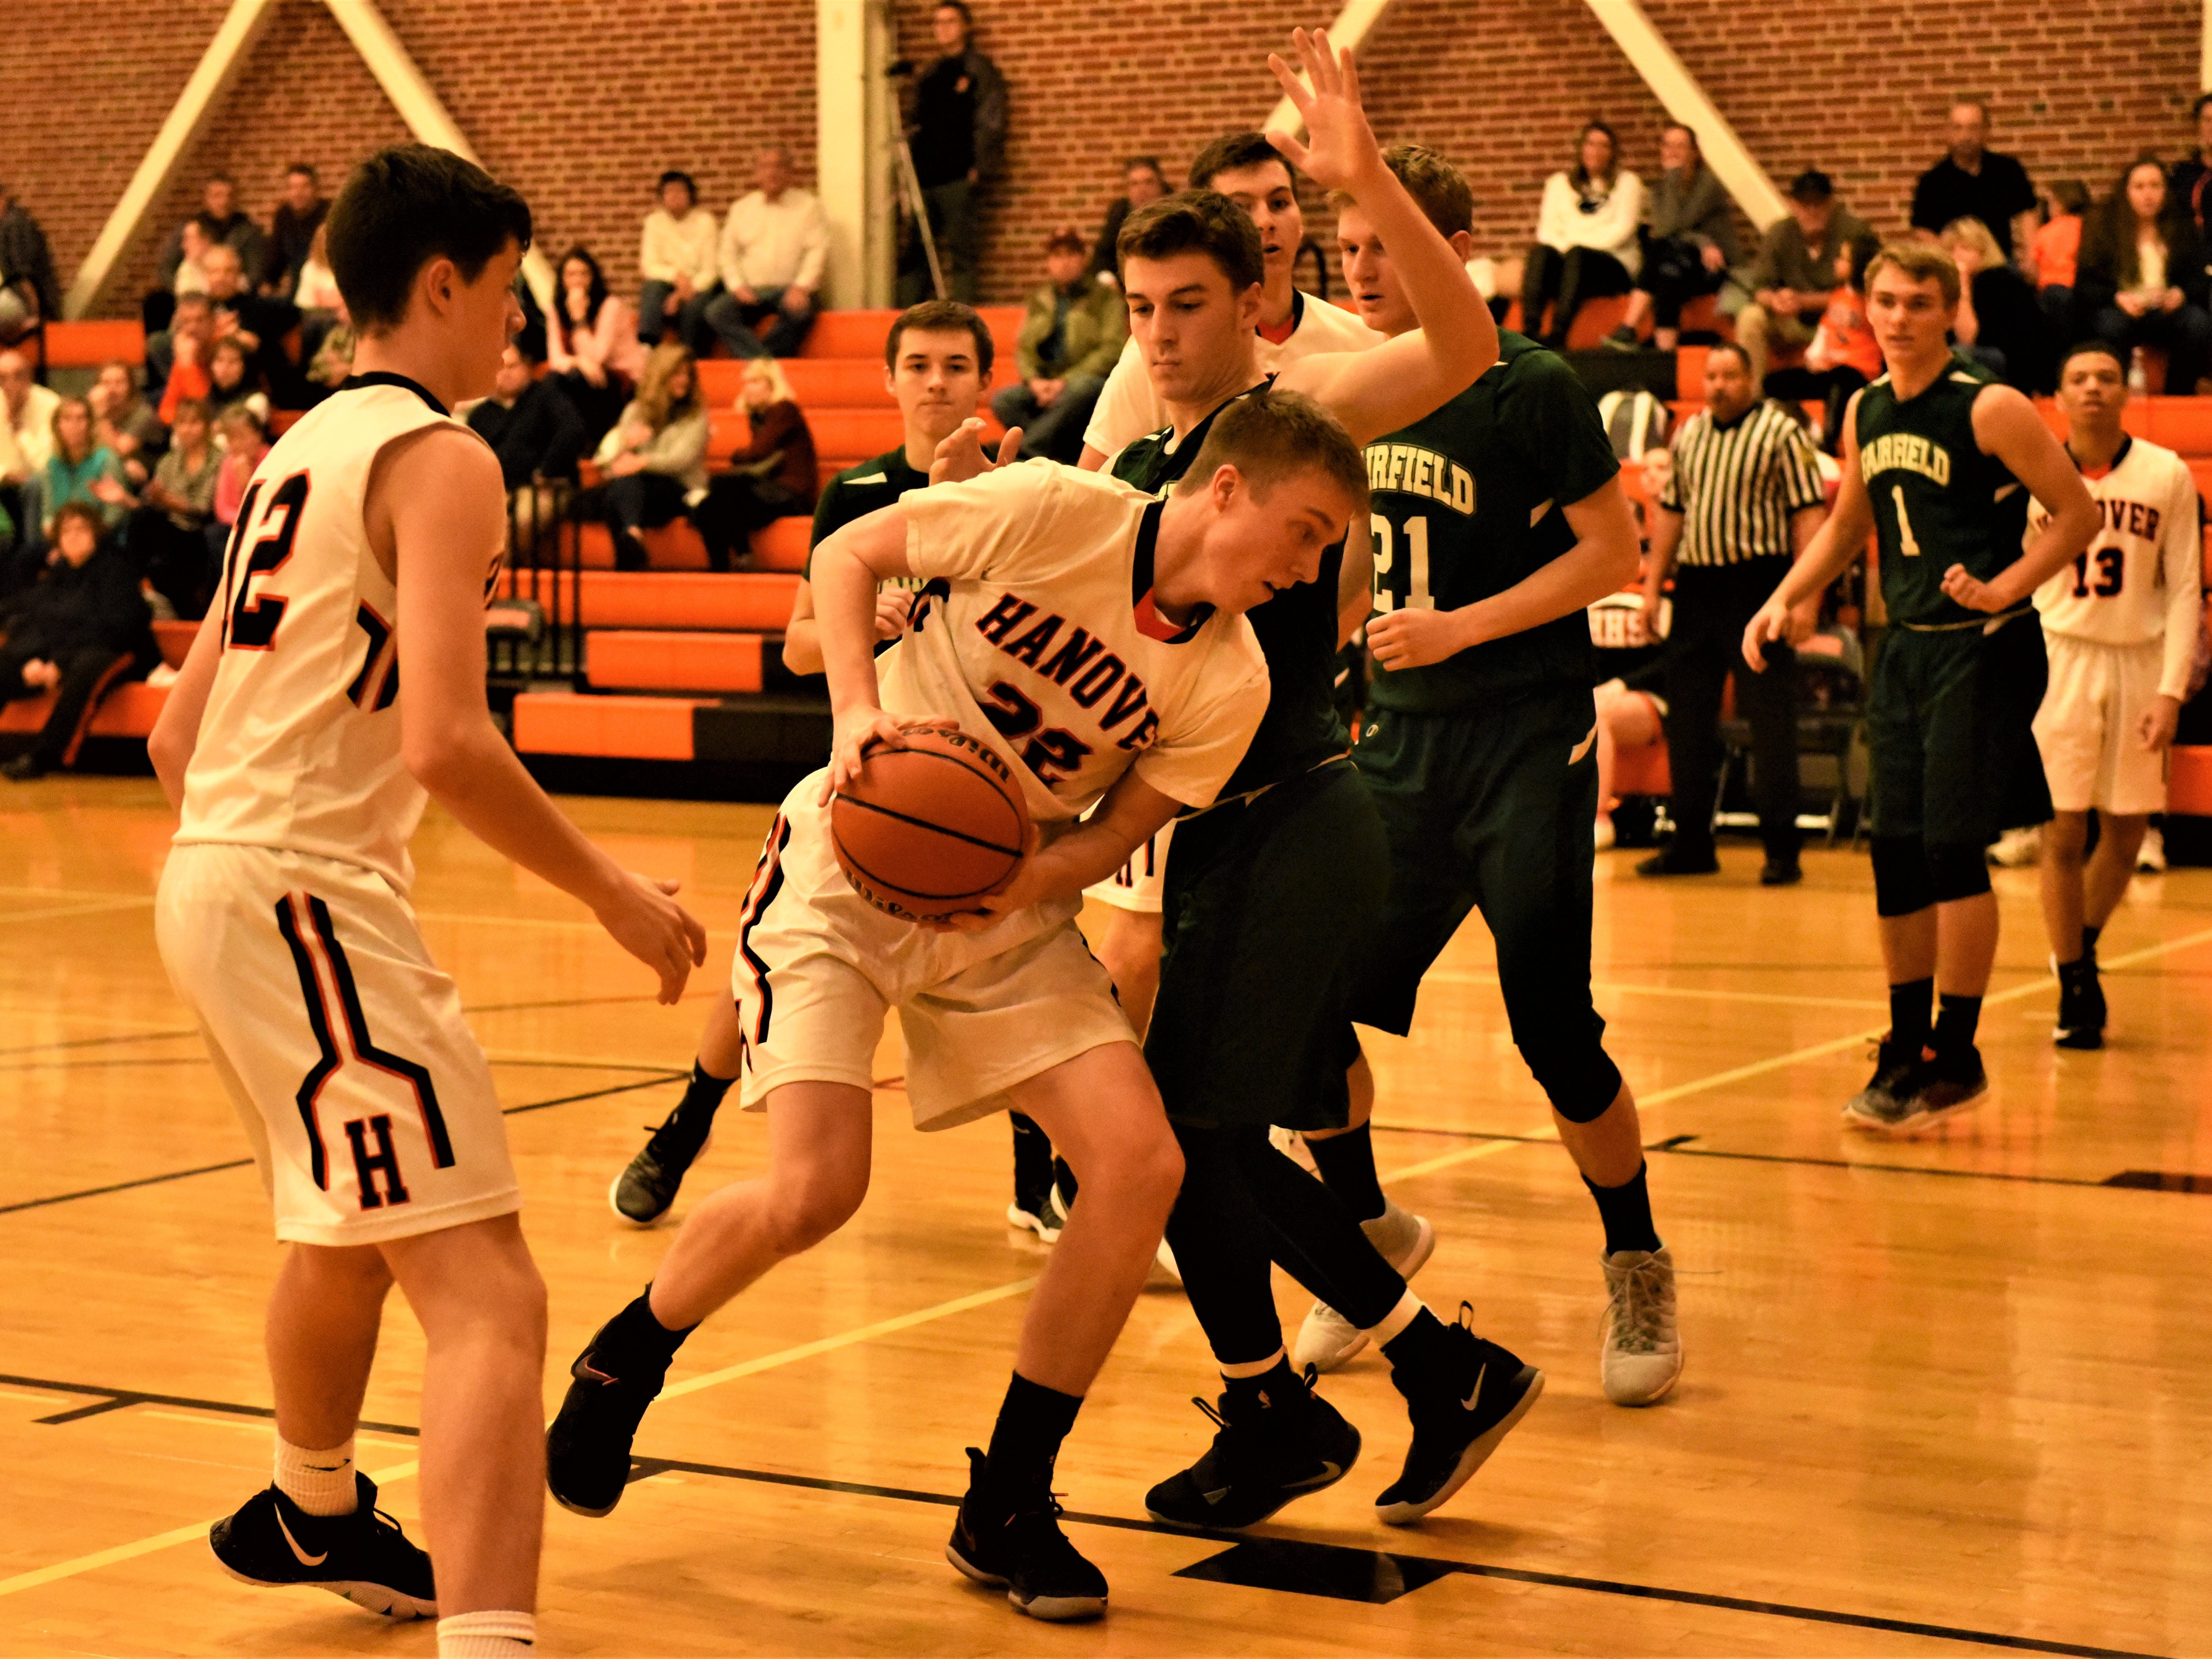 Michael Killinger drives into the paint. Fairfield High School lost at Hanover High School on Dec. 21, 57 to 43.